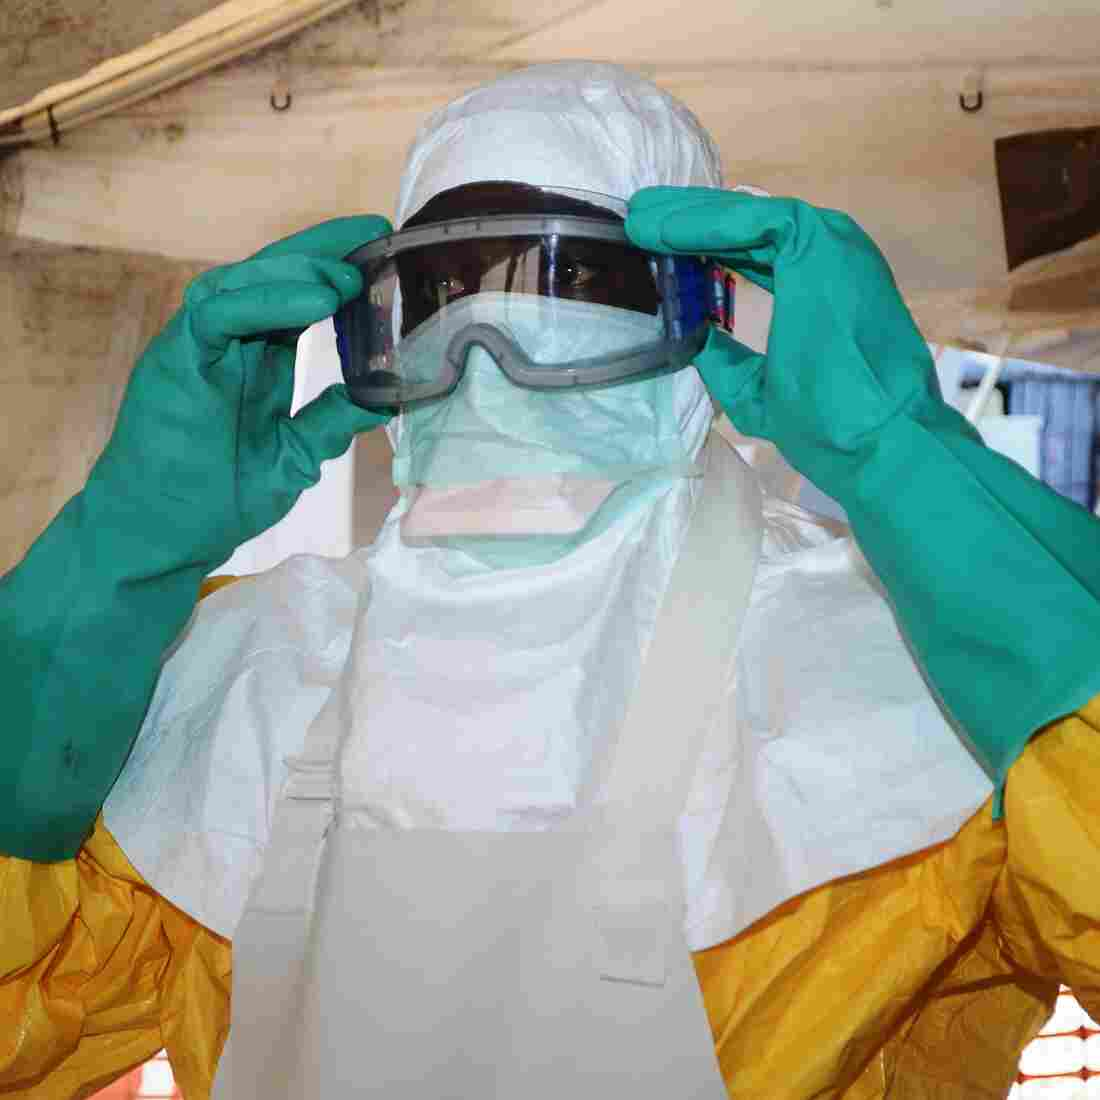 A member of Doctors Without Borders dons protective gear in Conakry, Guinea. U.S. health care workers will use similar protective garb.